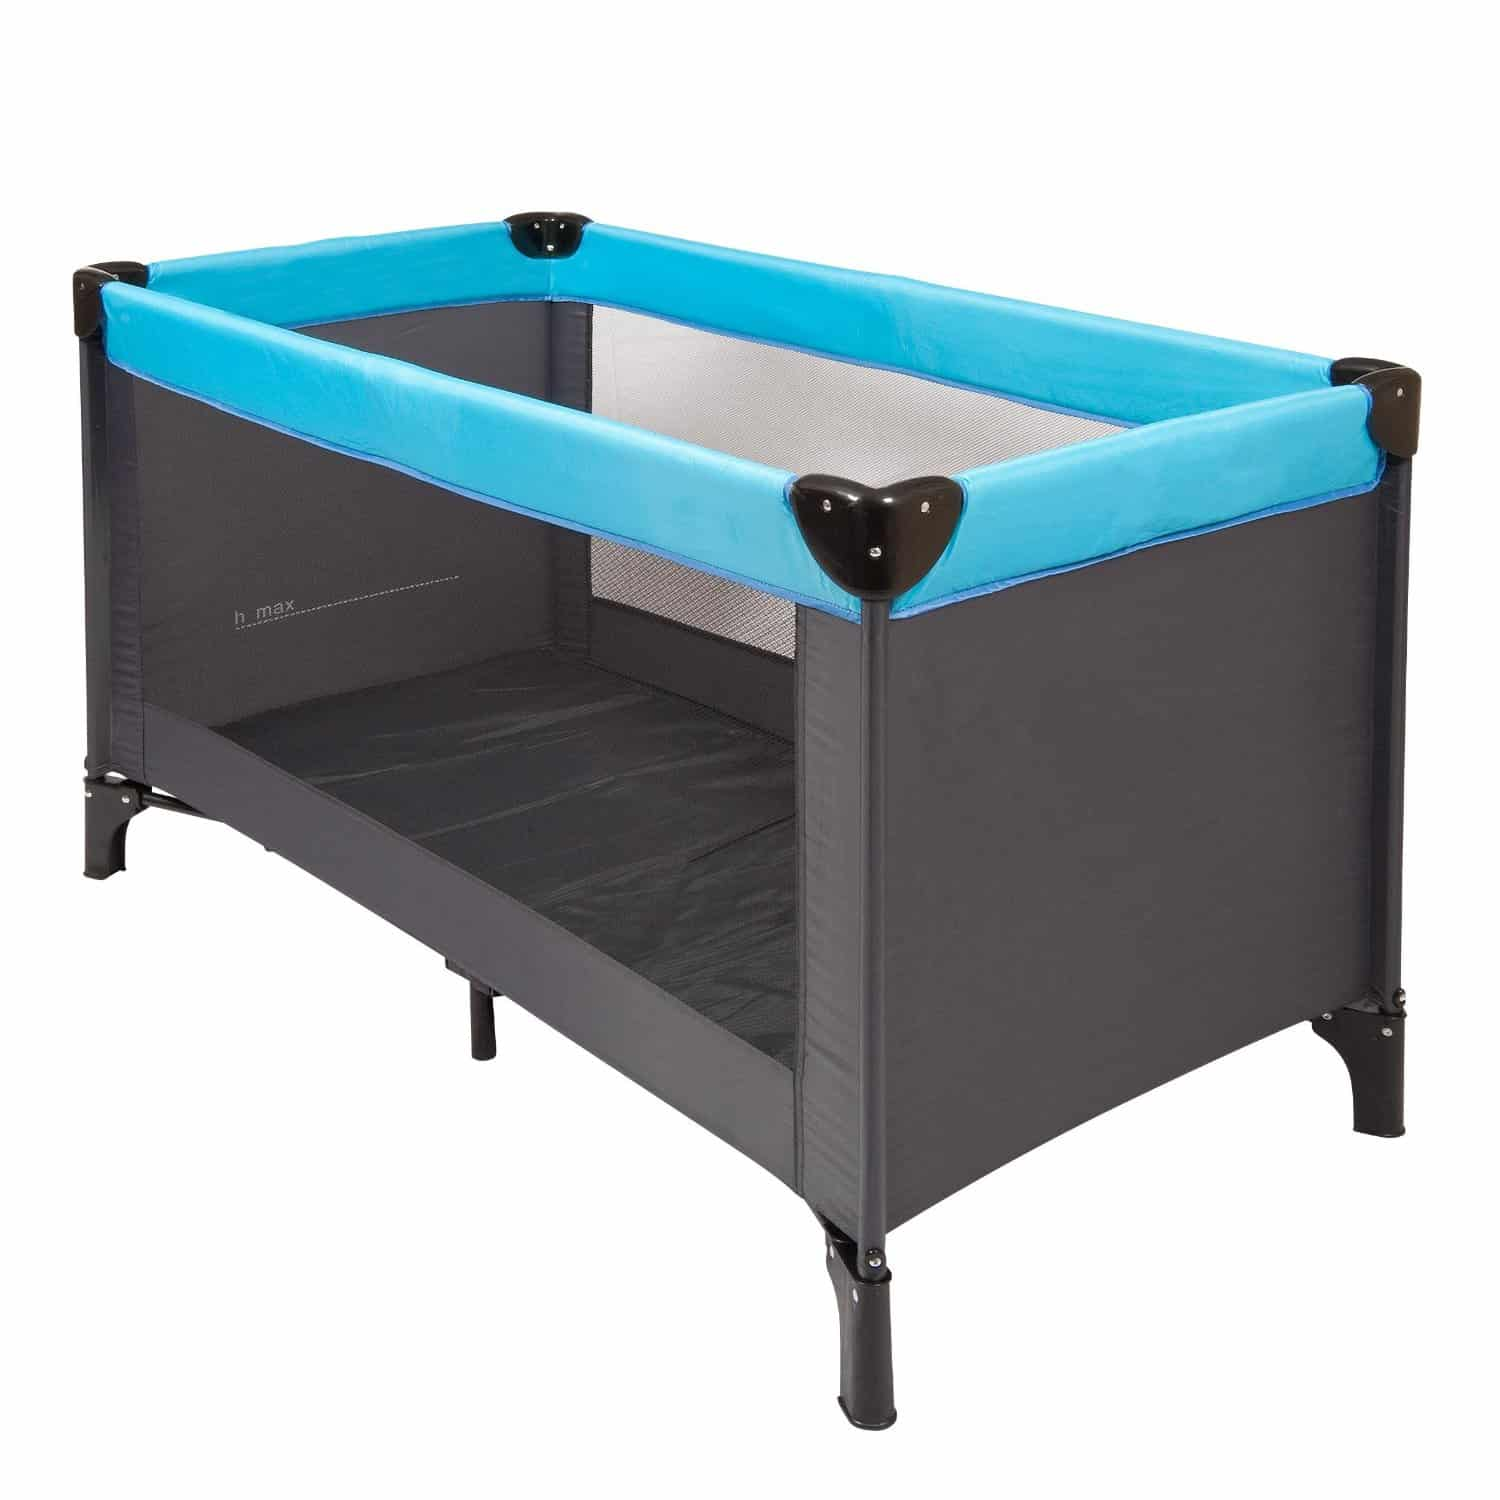 5 lits parapluies moins de 50 euros babybed. Black Bedroom Furniture Sets. Home Design Ideas